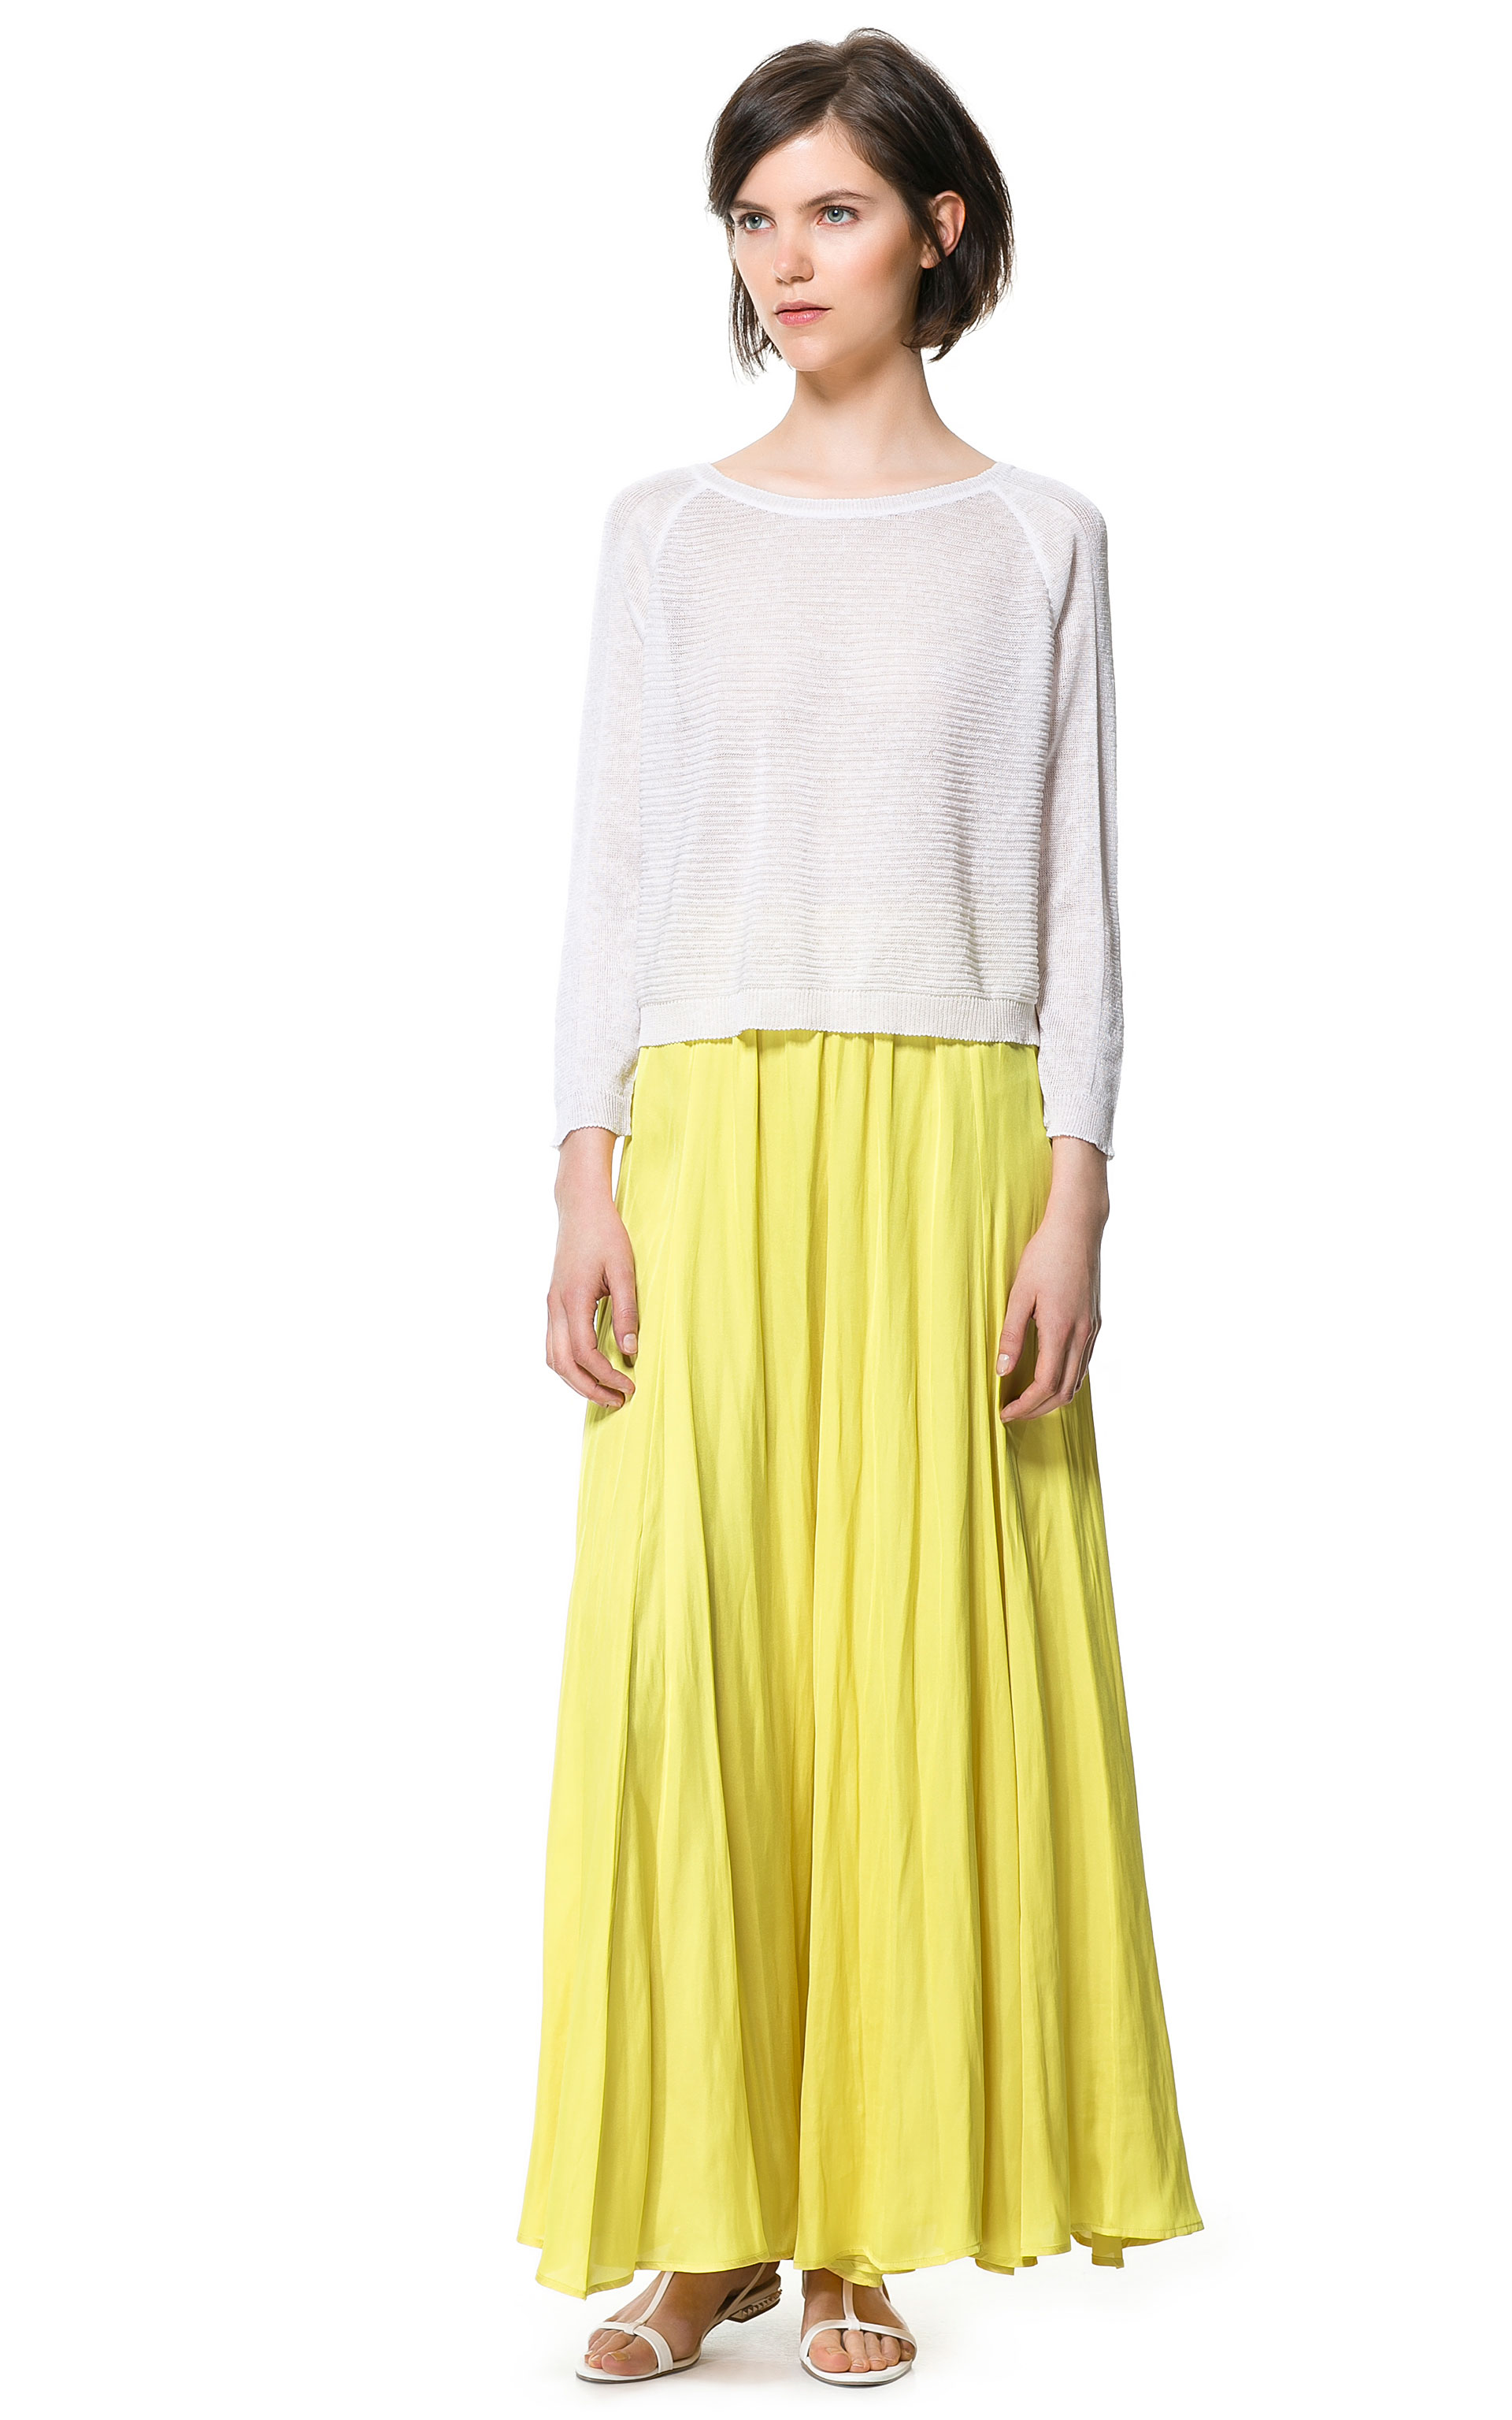 SheIn(sheinside) Yellow High Waist Maxi Skirt ($17) liked on Polyvore featuring skirts, yellow, shein, long skirts, long flared skirt, long chiffon skirt, long maxi skirts and chiffon skirt Find this Pin and more on Clothes by Narah Salgado.